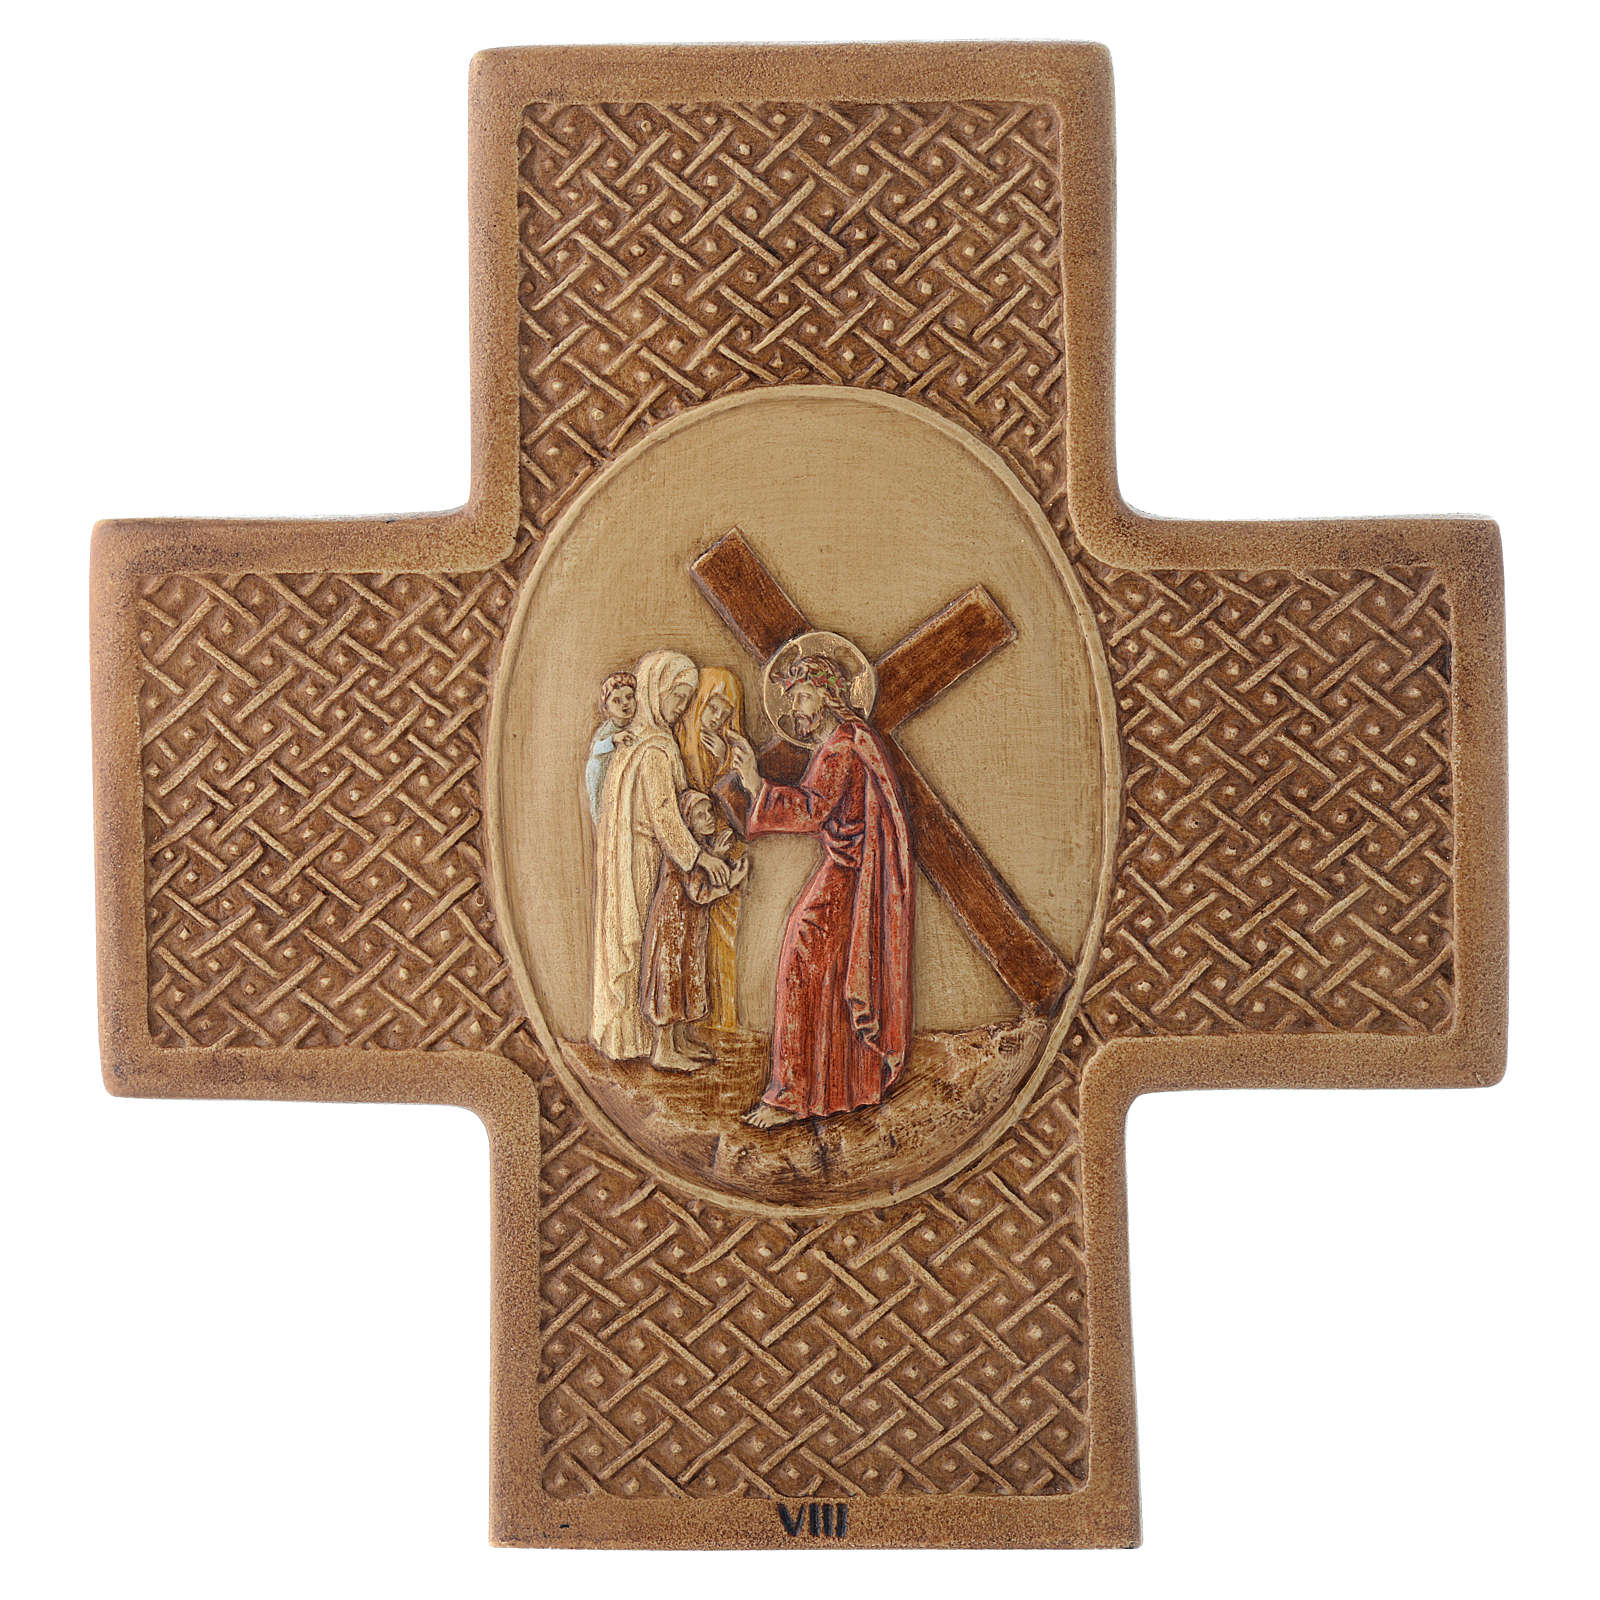 Stations of the cross in stone 22,5cm by Bethleem, 15 stations 4